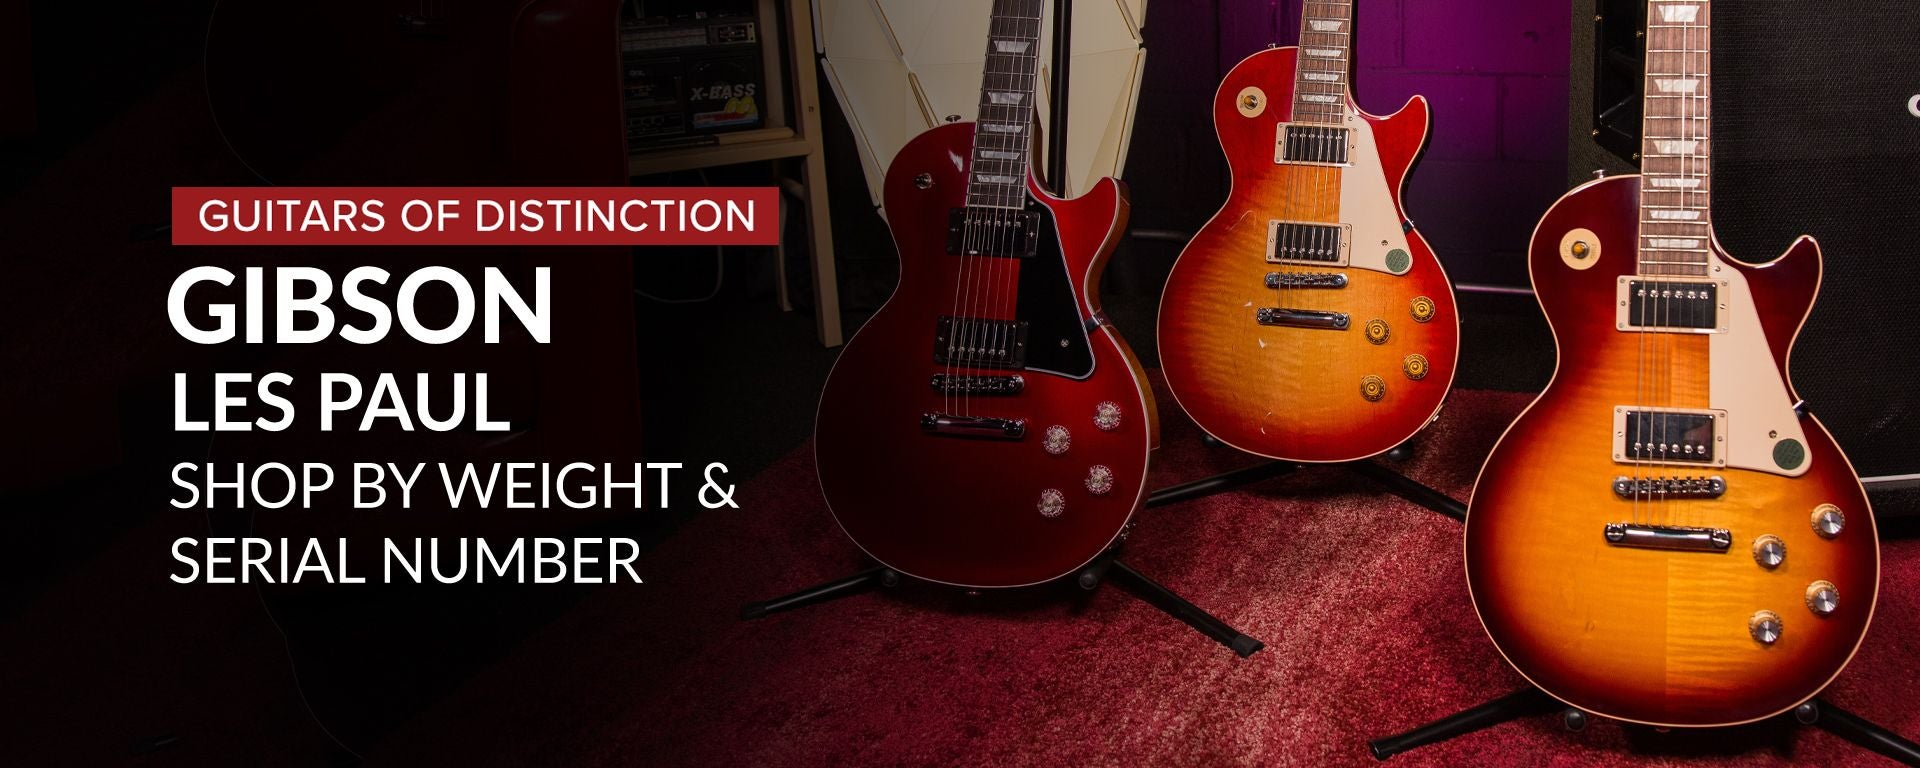 Shop Gibson Les Paul Guitars by Weight and Serial Number at Sam Ash